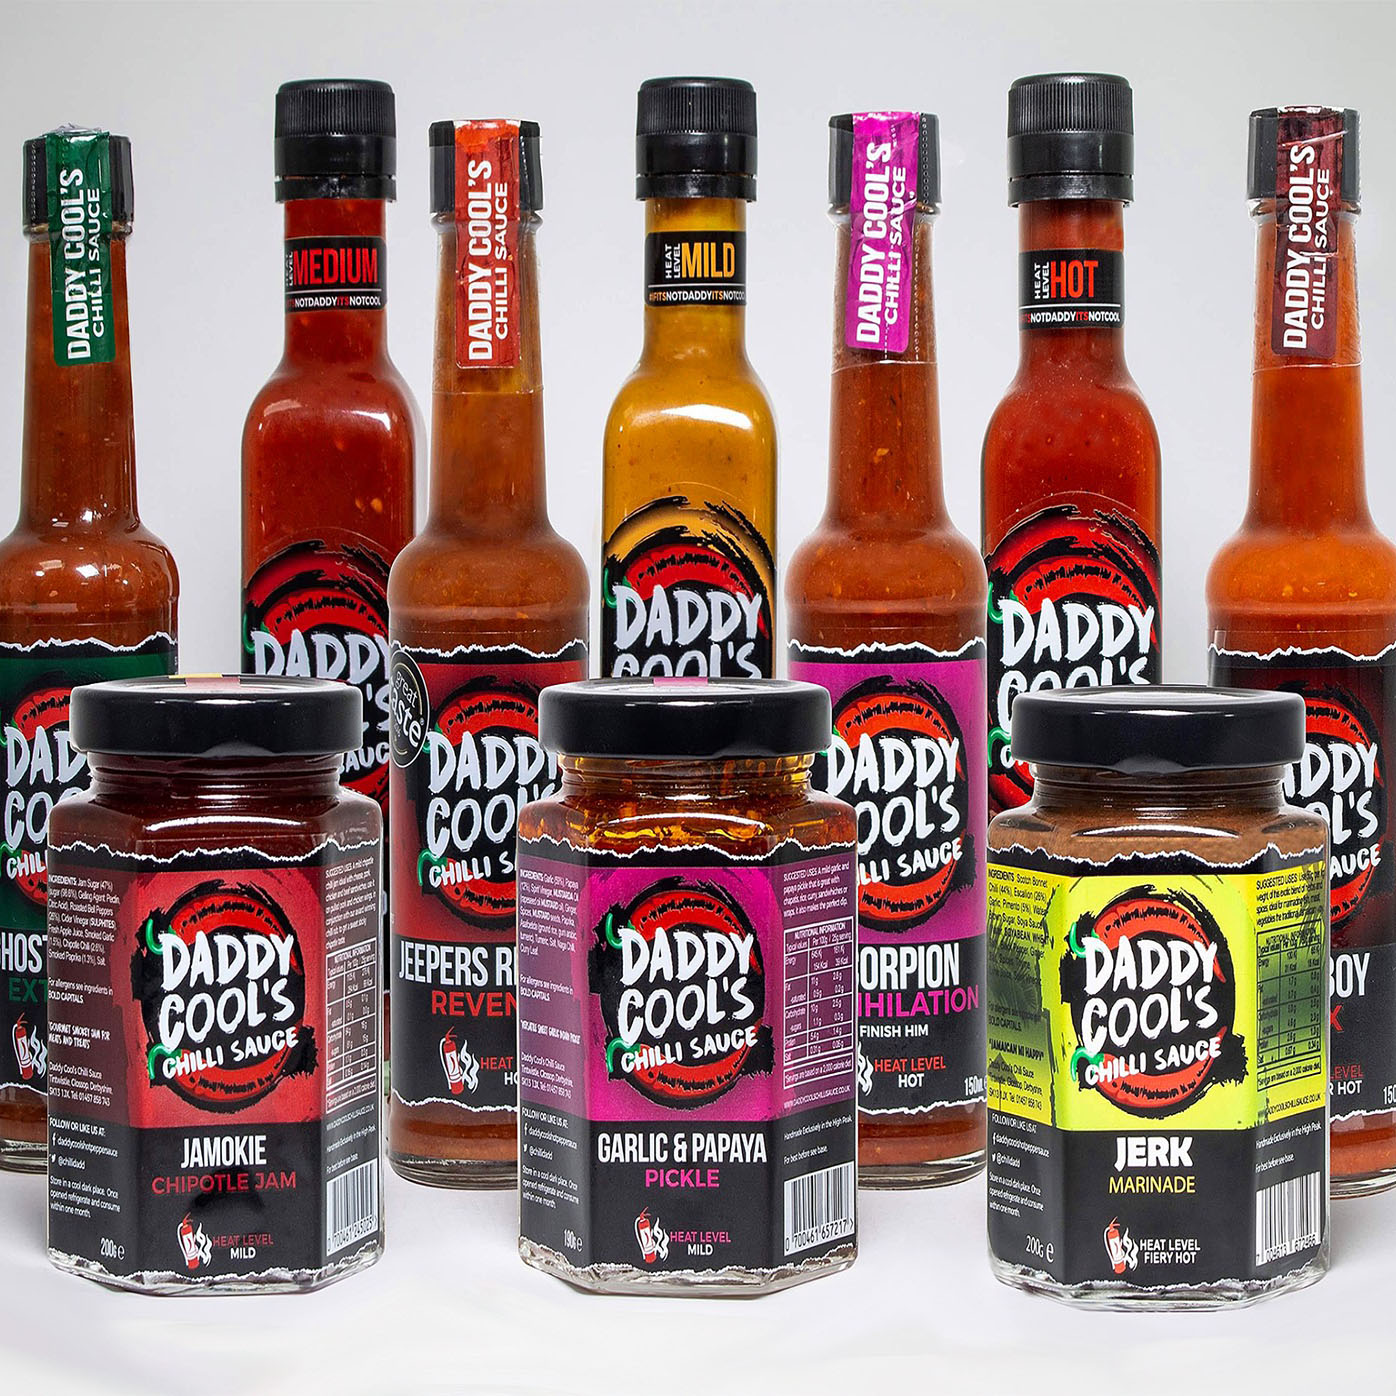 Selection of Daddy Cool's products including chilli sauces and relishes.